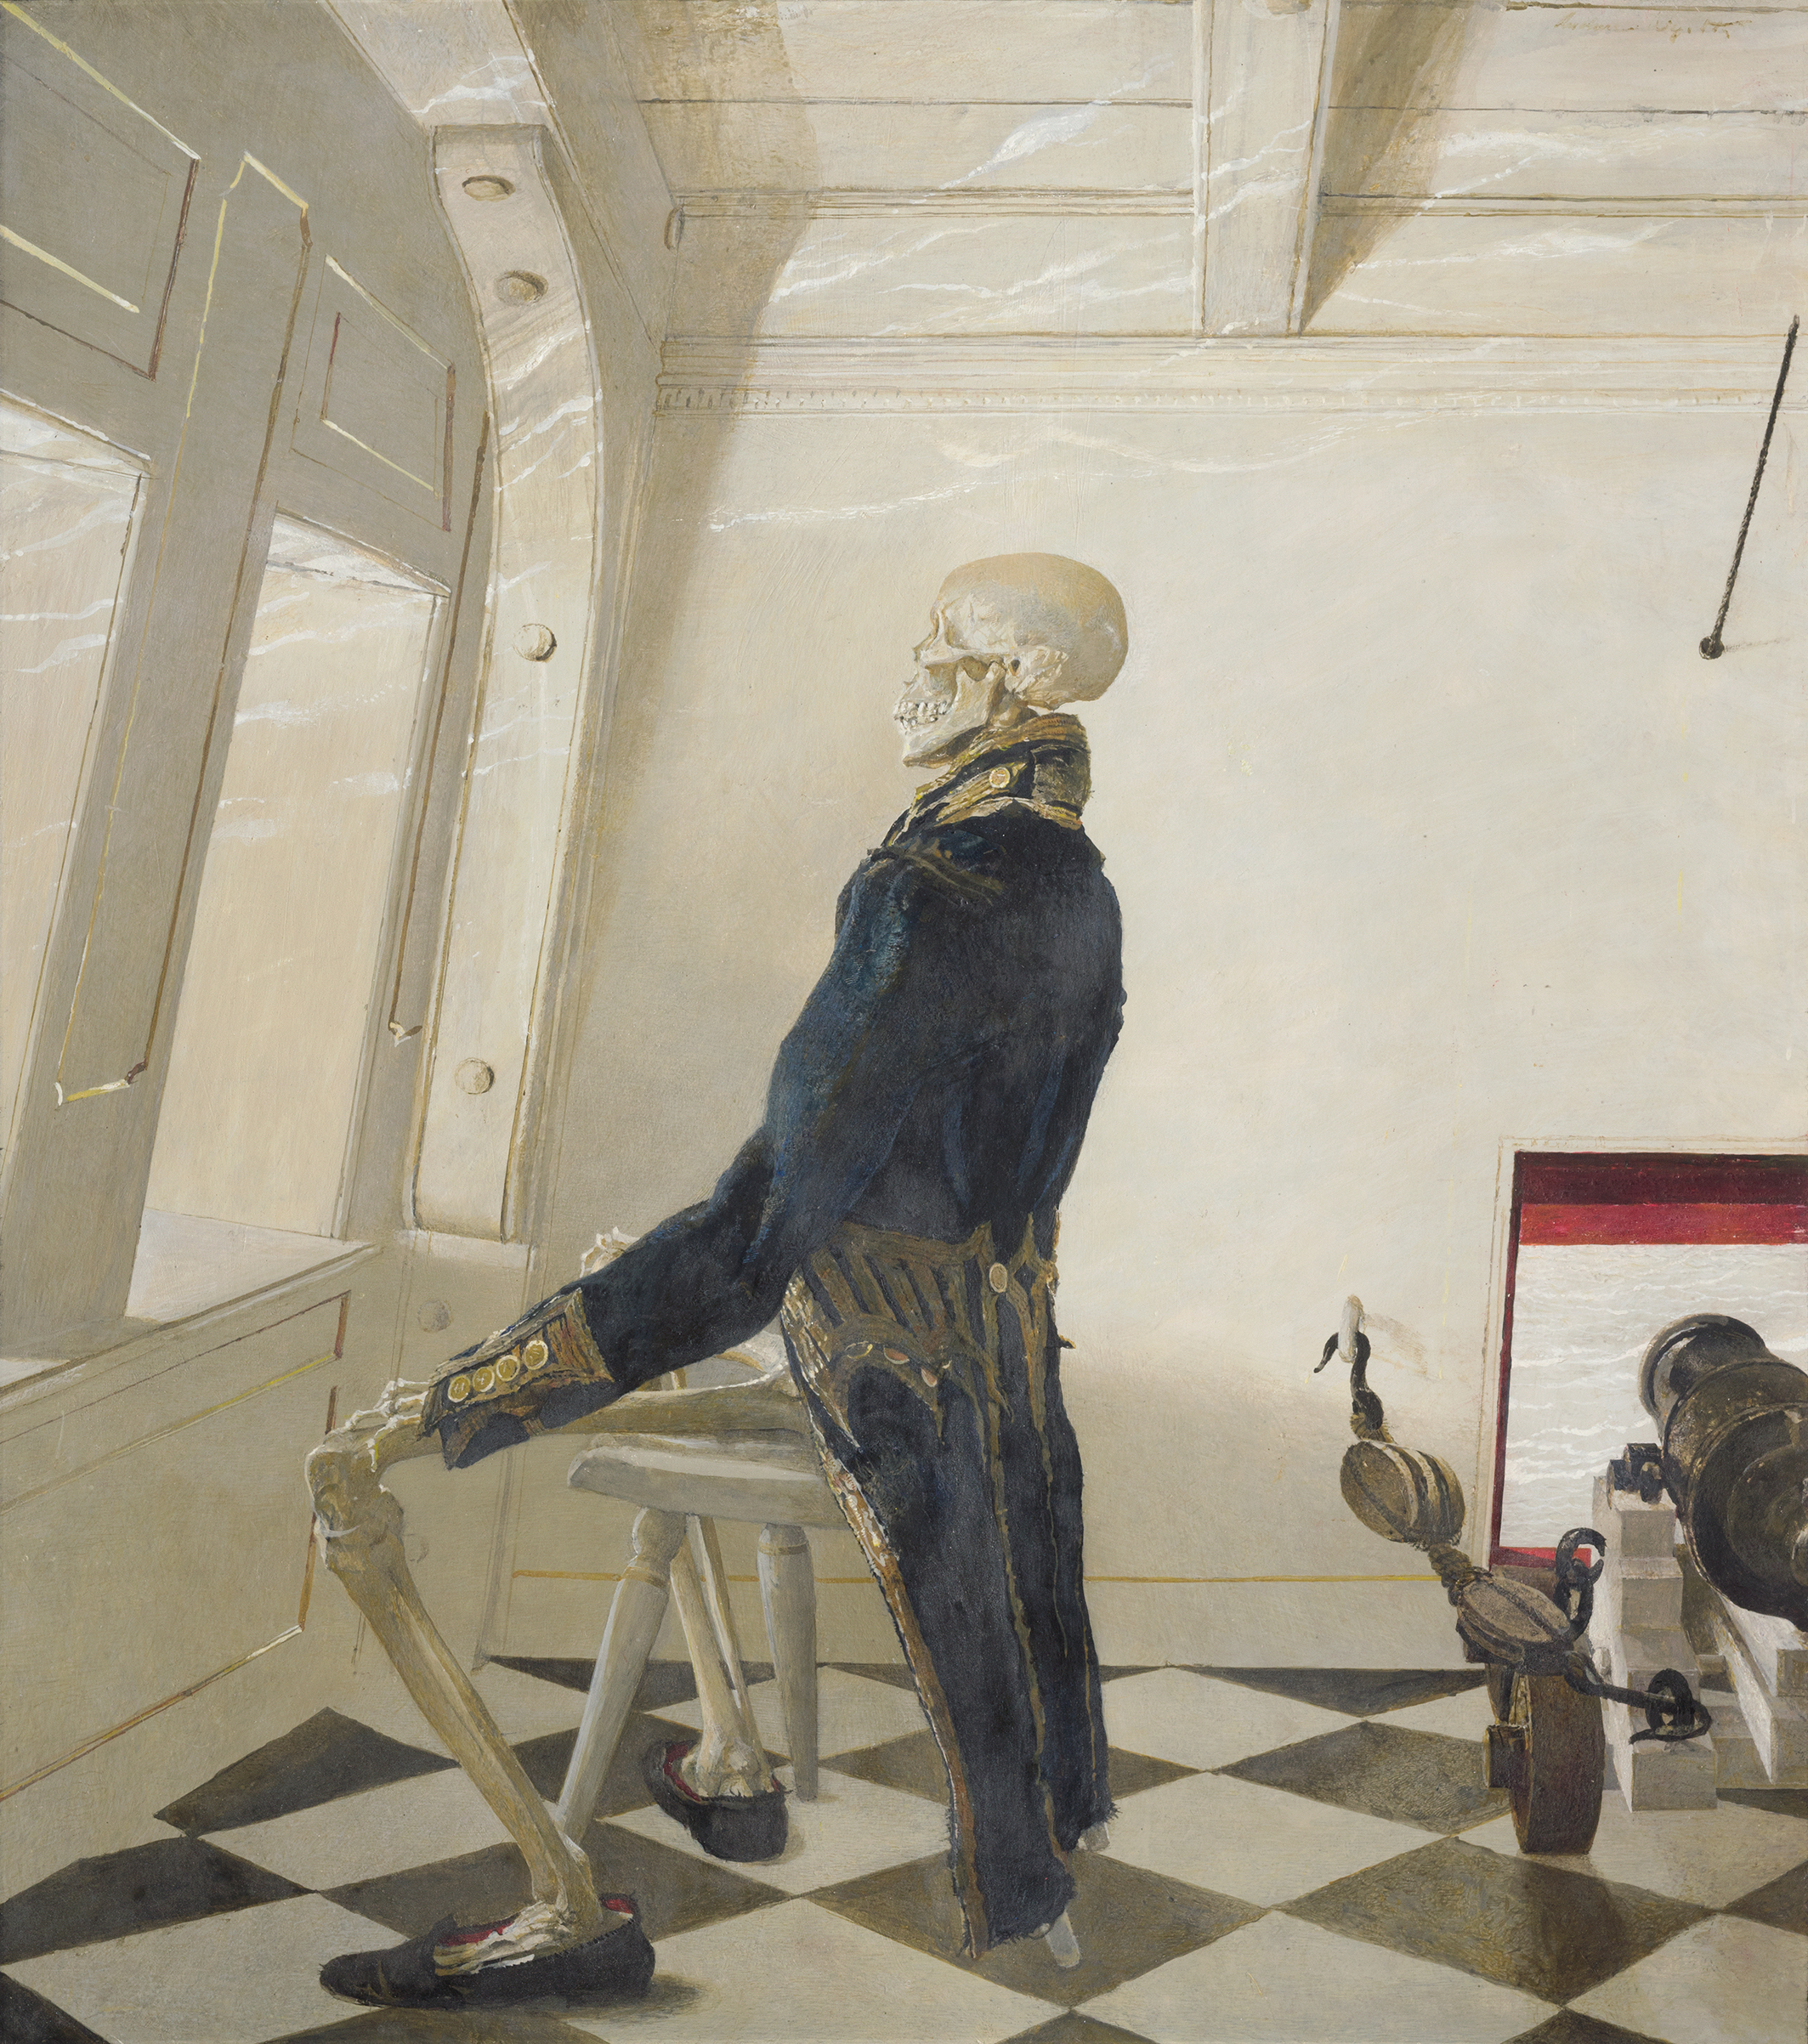 Dr. Syn, 1981 tempera on panel from The Andrew and Betsy Wyeth Collection.